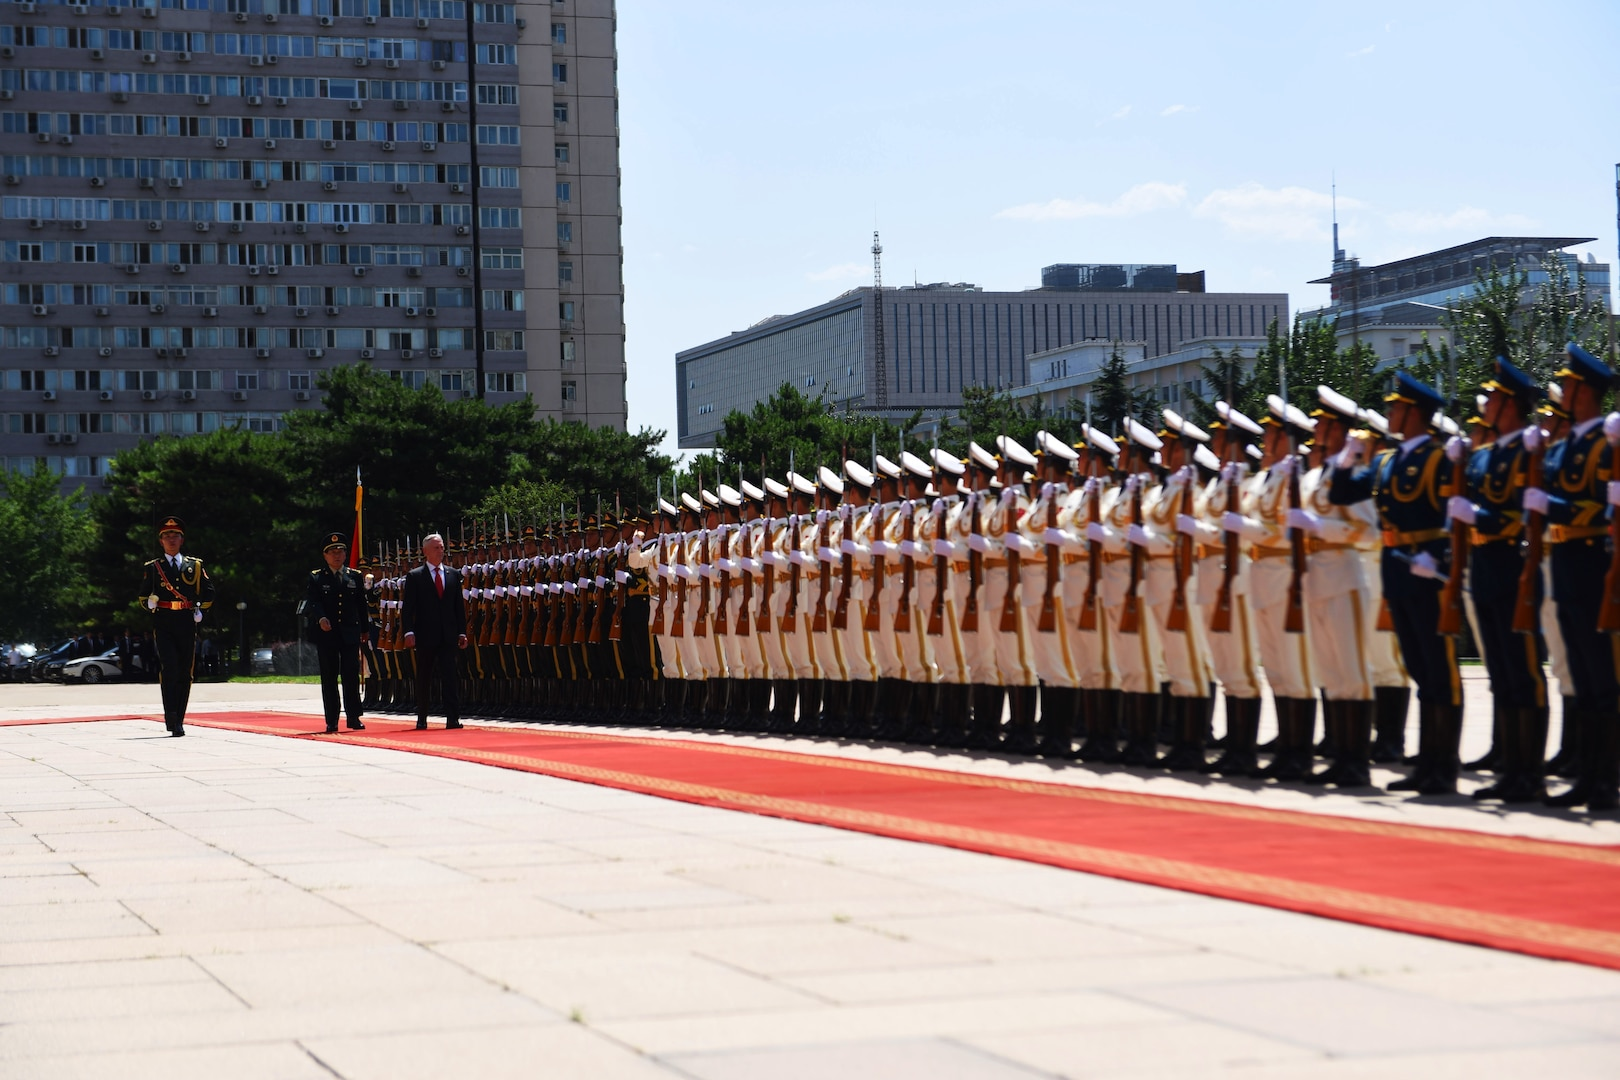 Defense Secretary James N. Mattis and China's Minister of National Defense Wei Fenghe perform a pass and review of the soldiers.